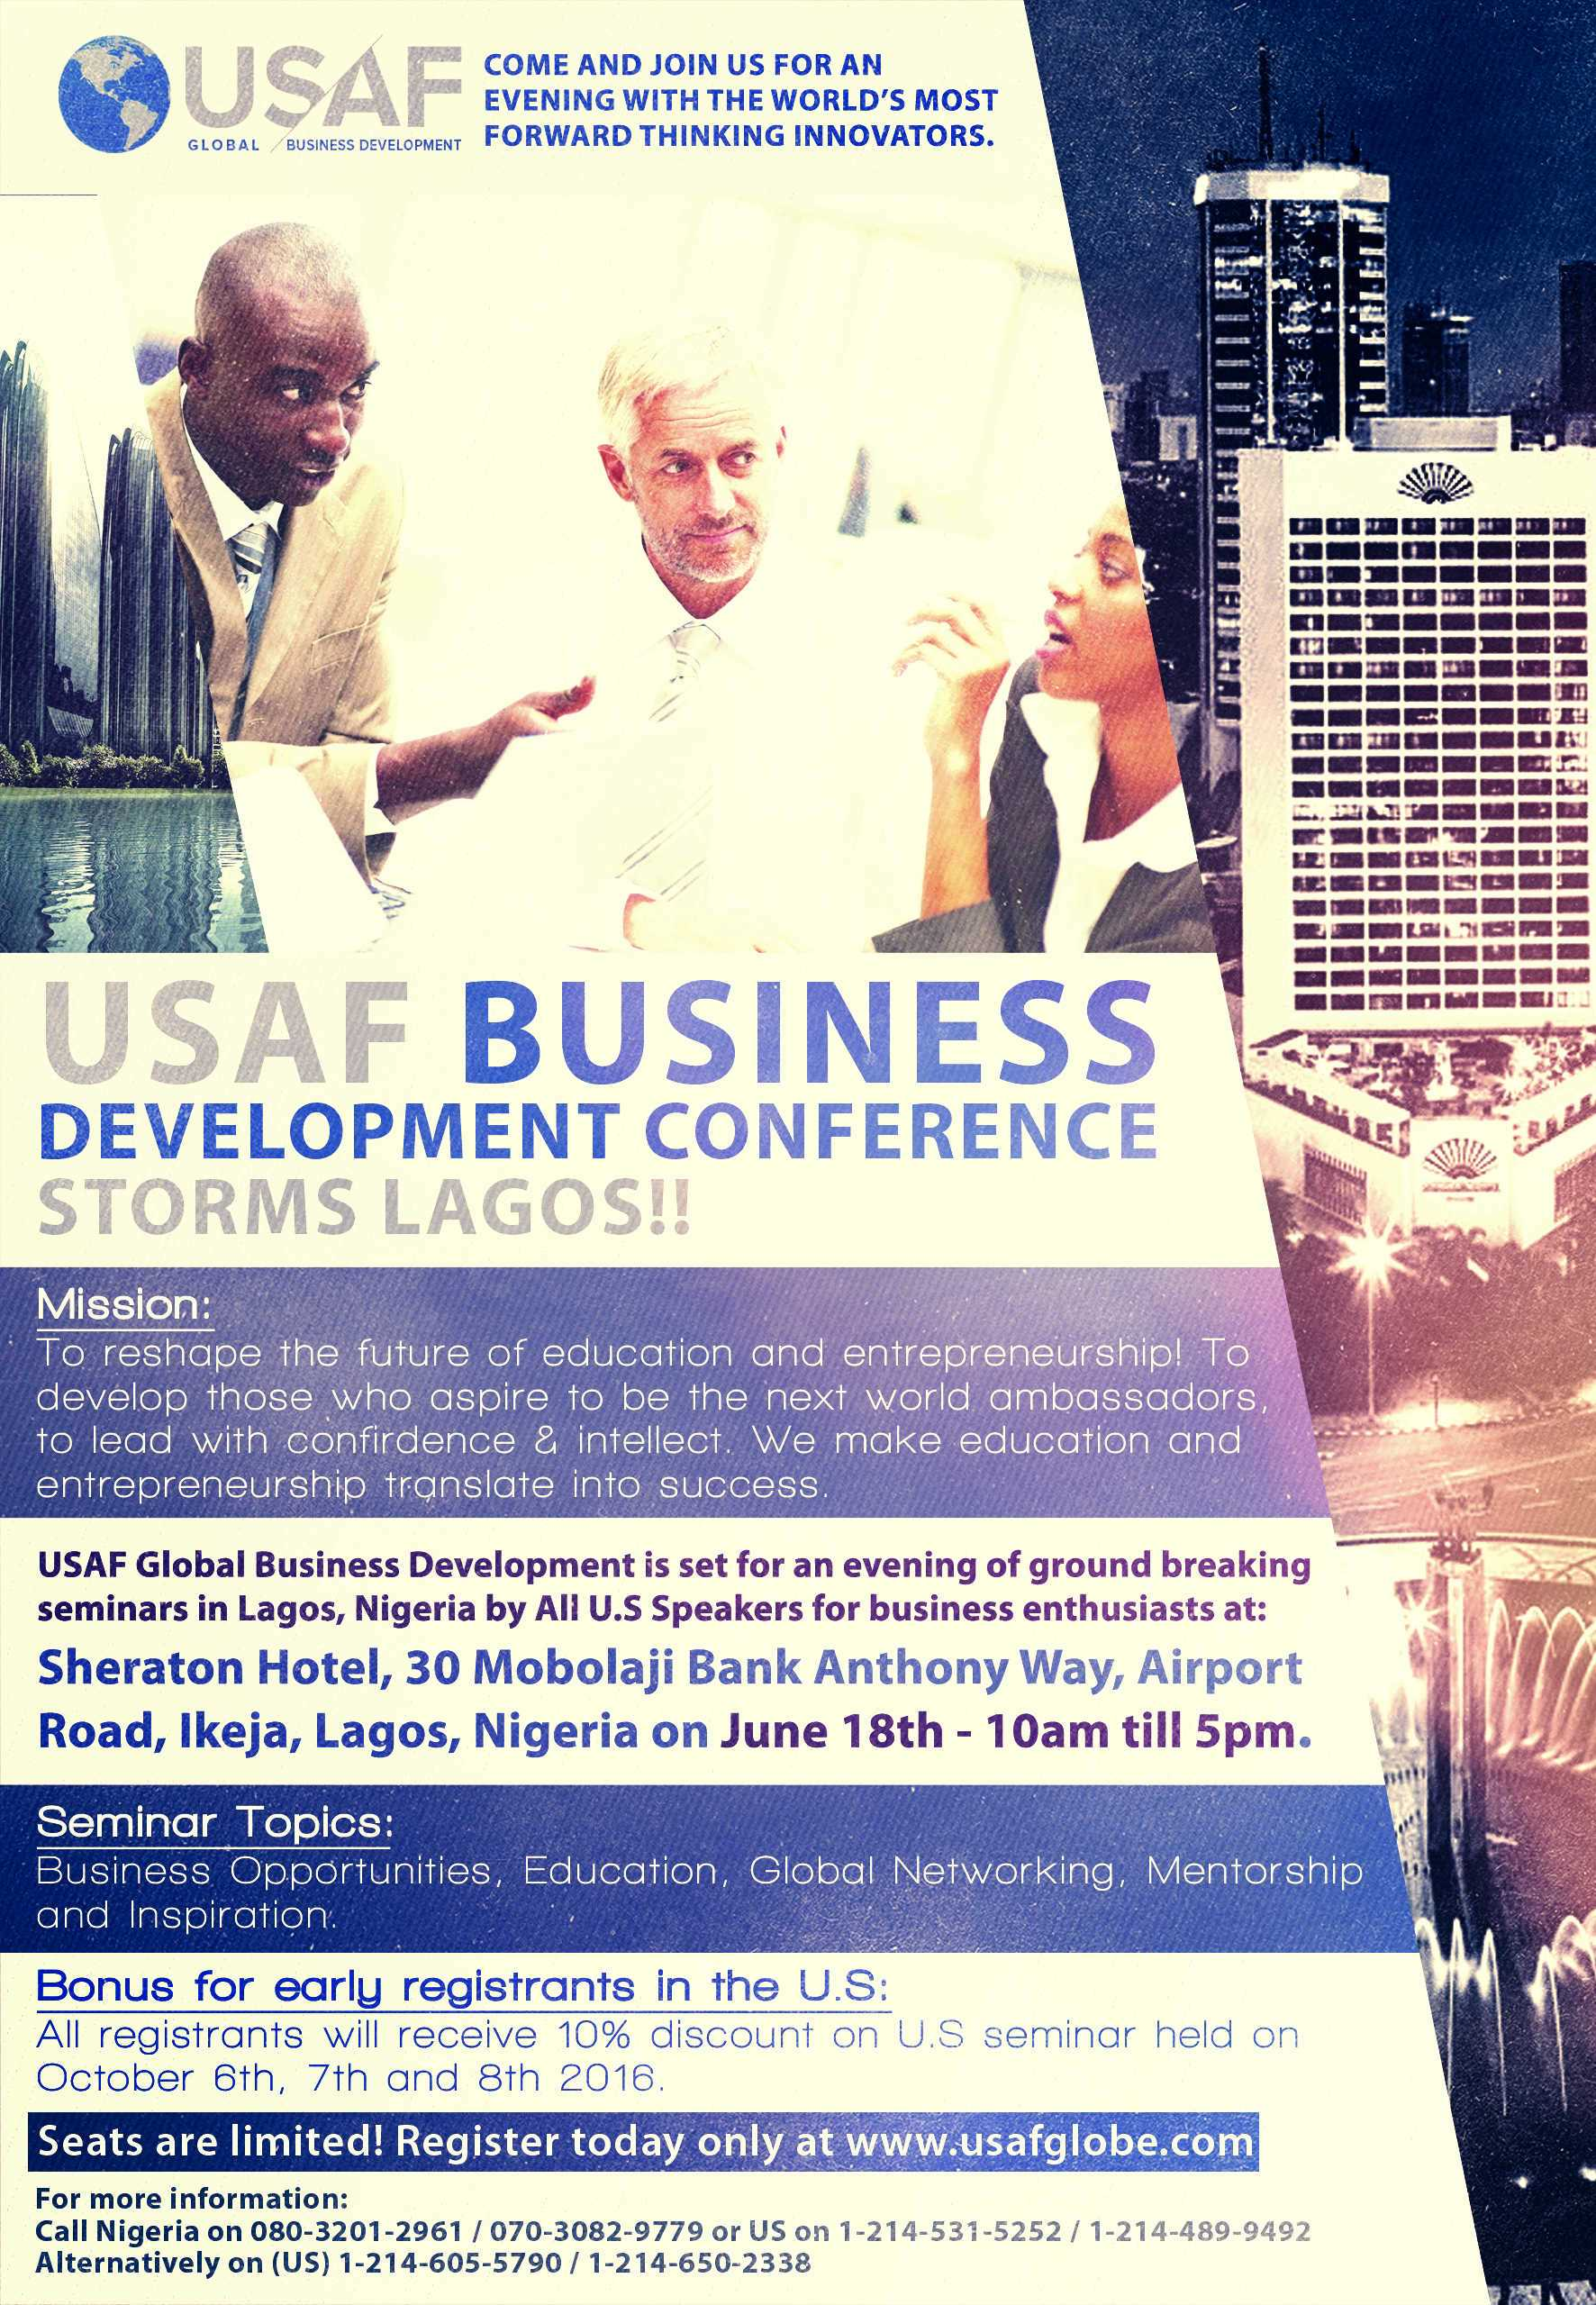 international organization development organizational development thinking International organization development organizational development thinking and practices for global businesses settings international organization development organizational development thinking and practices for global businesses settings  large international organizations are increasingly turning to organizational development practices to.